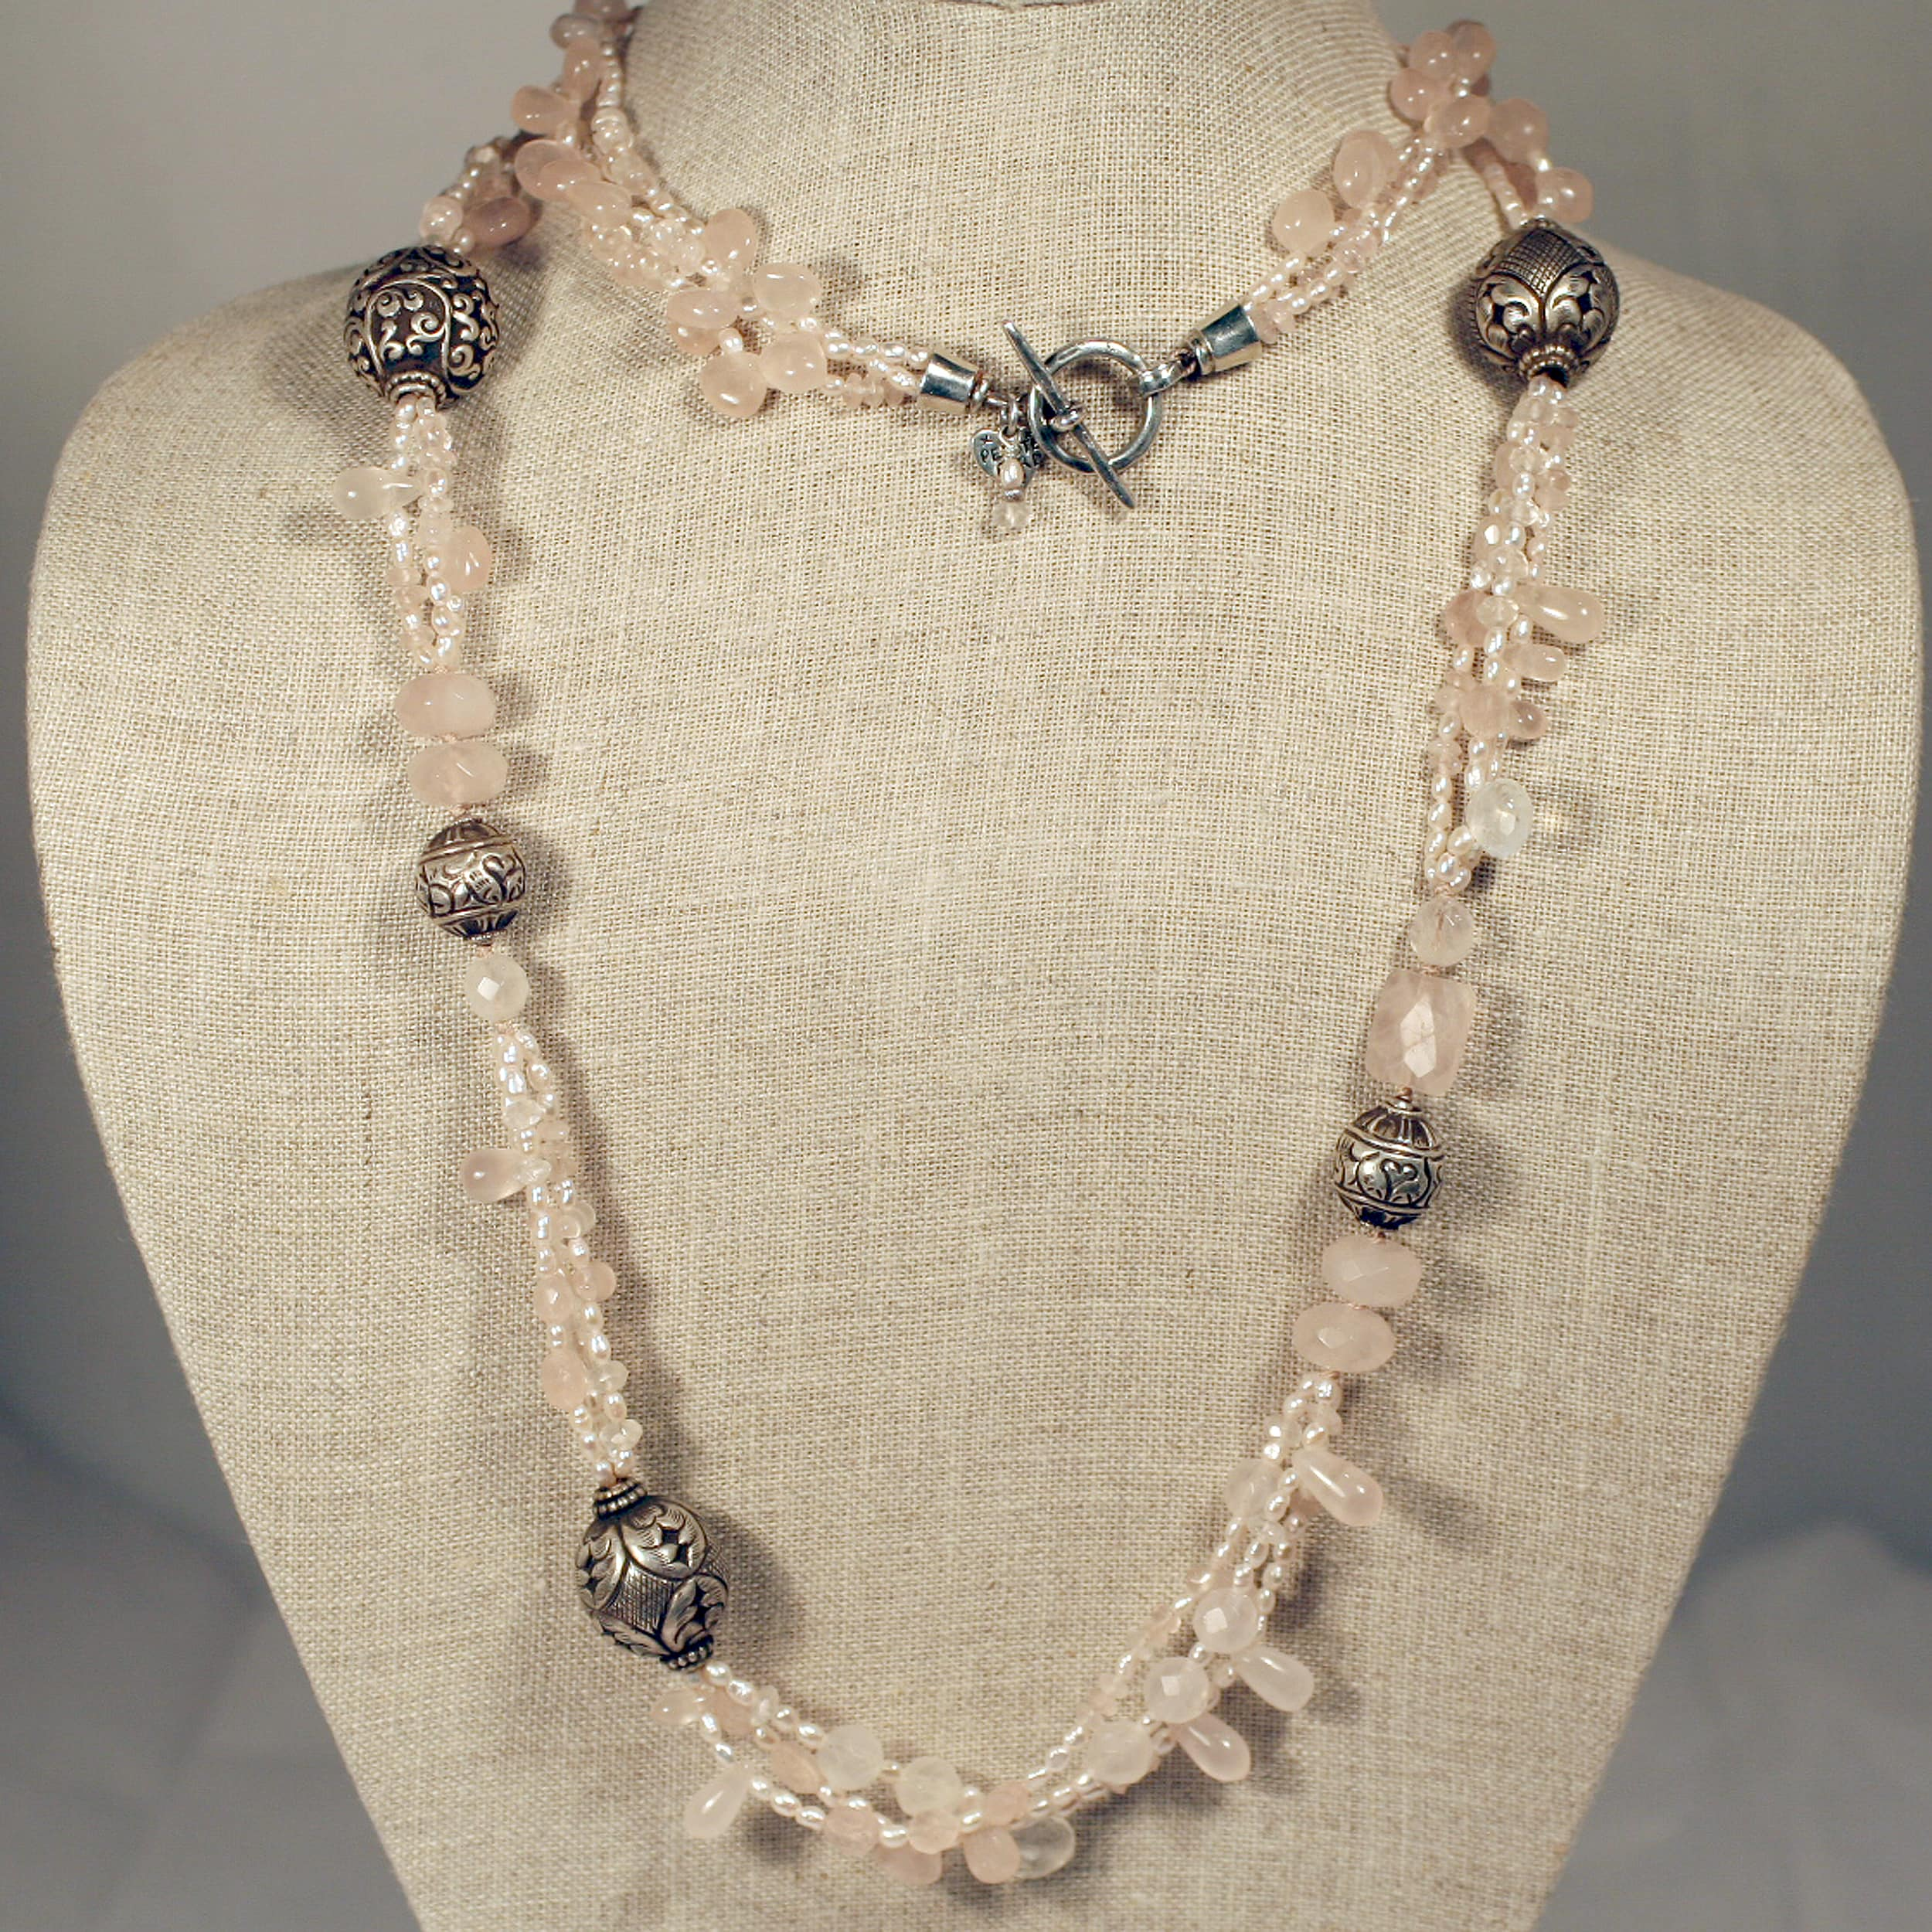 Peyote Bird Designs Sterling Silver Pearl and Rose Quartz Necklace (2 mm)(USA)